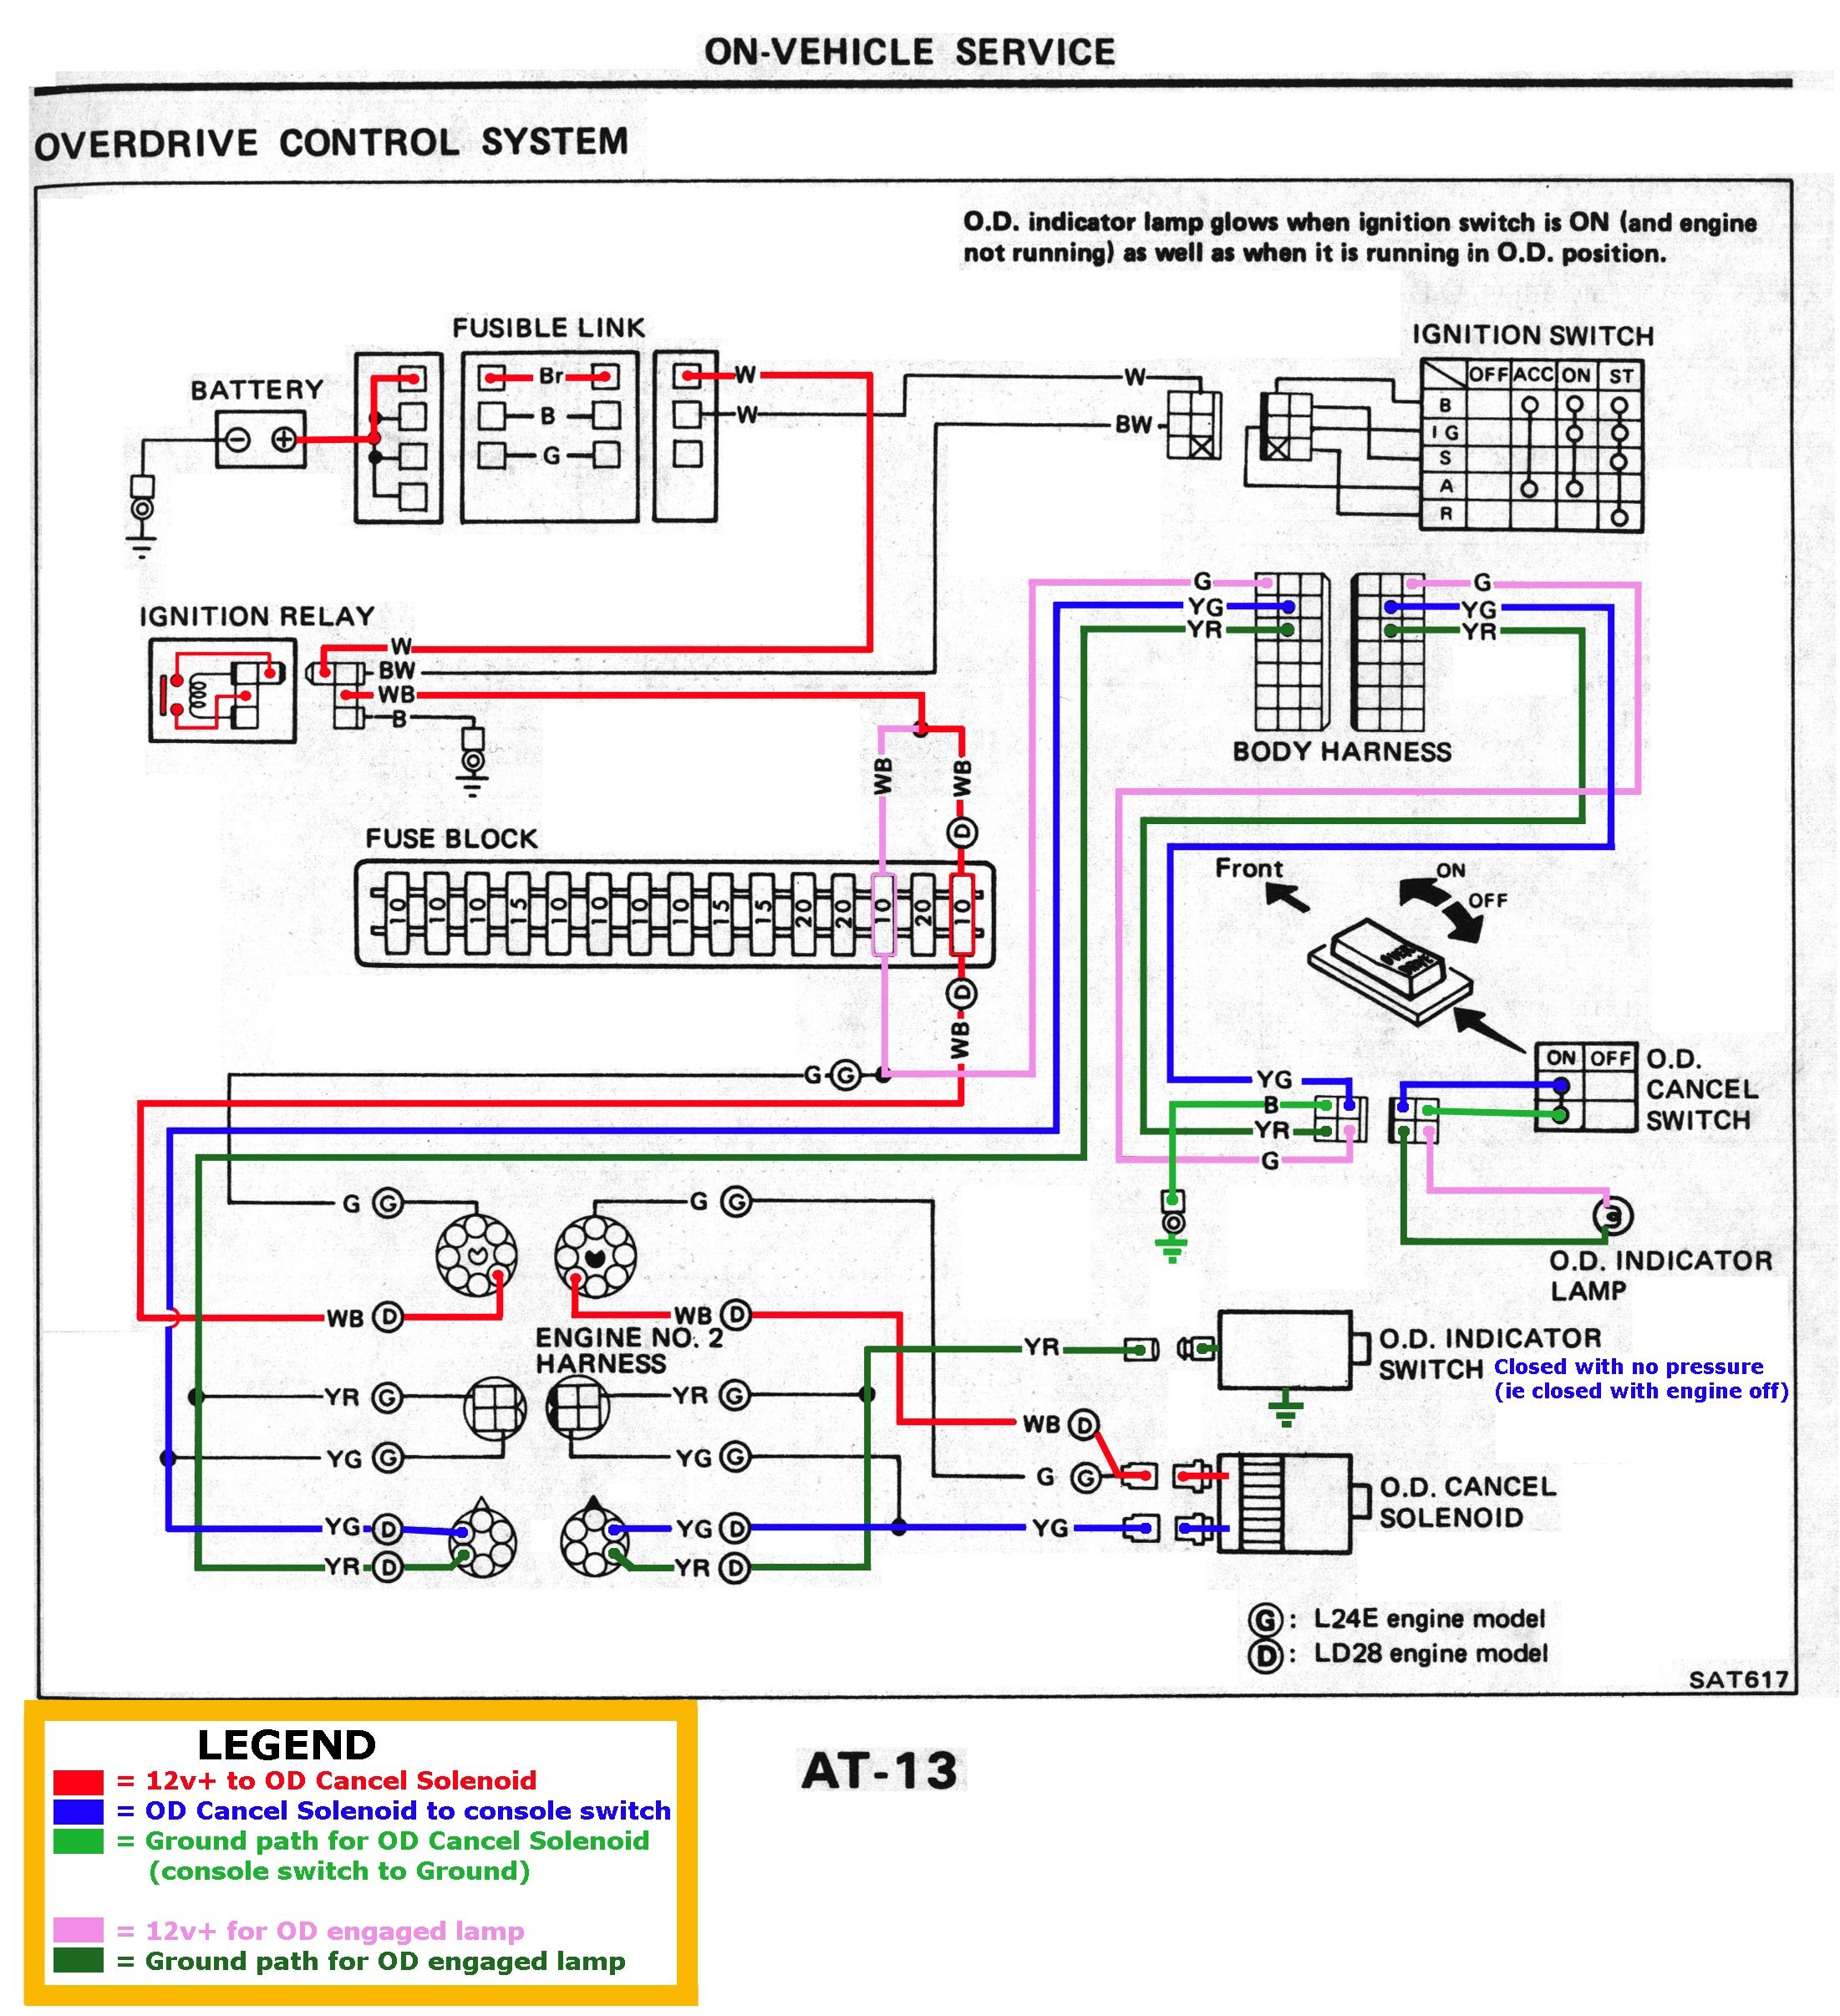 autoclave wiring diagram Collection-Wiring Diagram for Uv Light Valid Alarm Panel Wiring Diagram 18-f